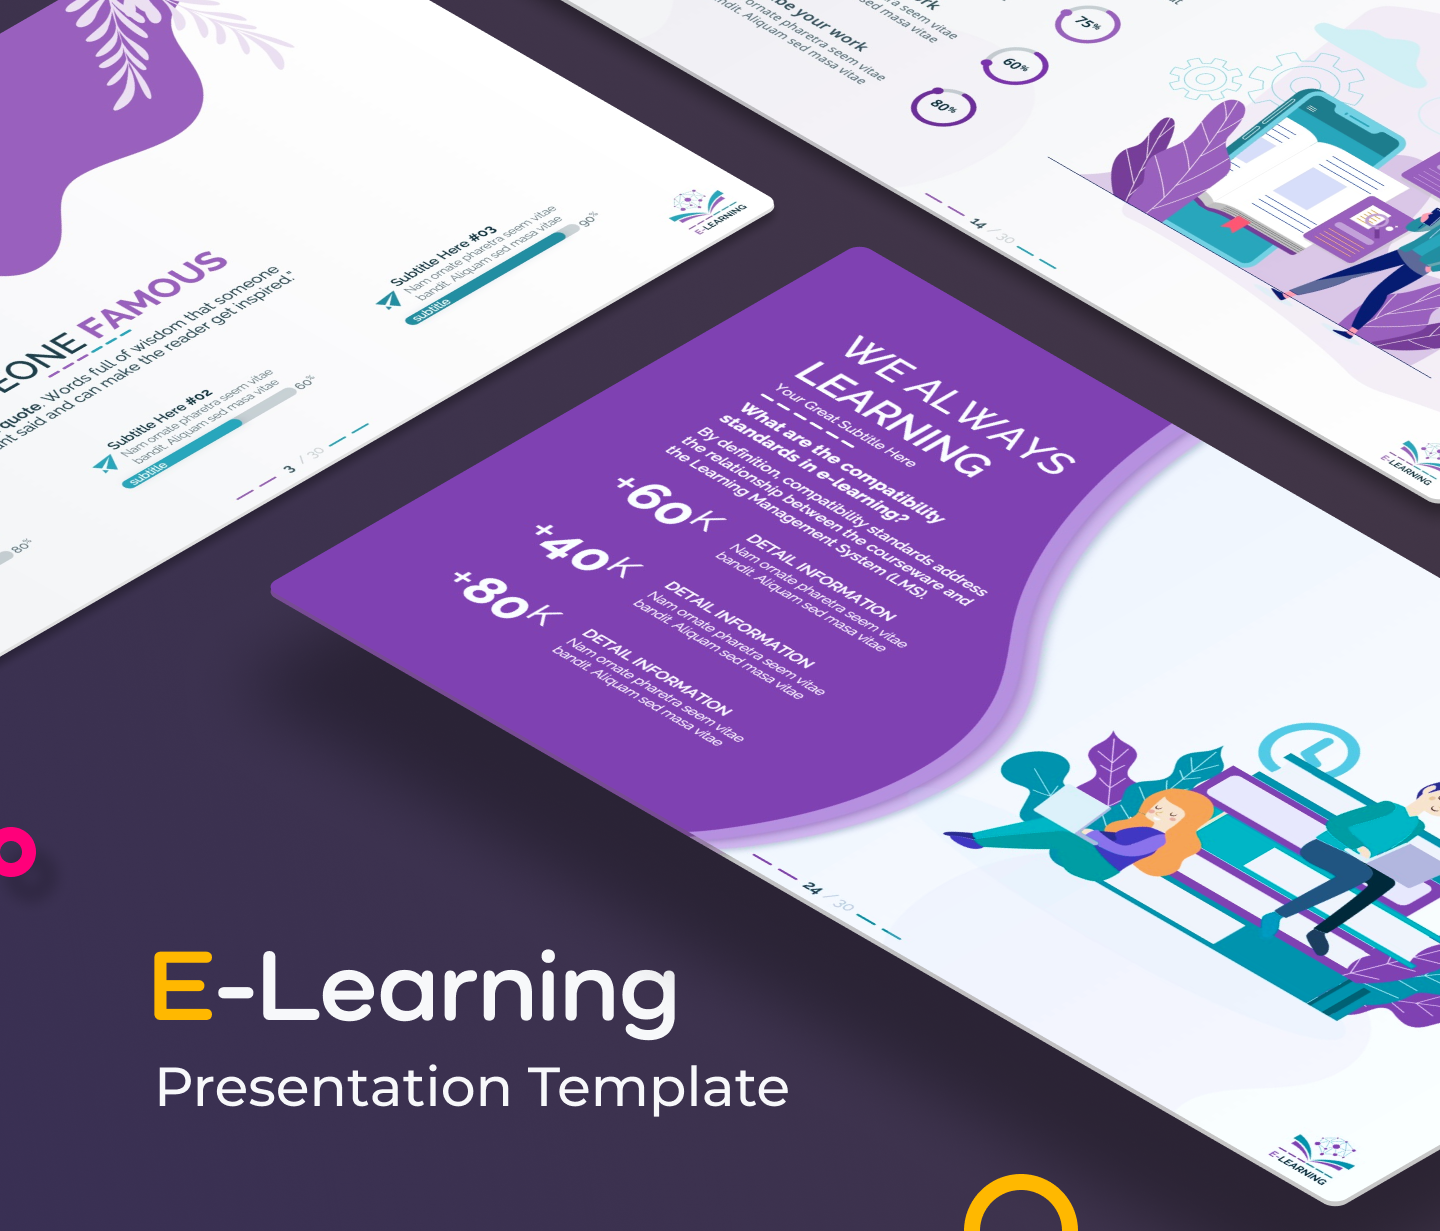 E-Learning PPT Presentation Template